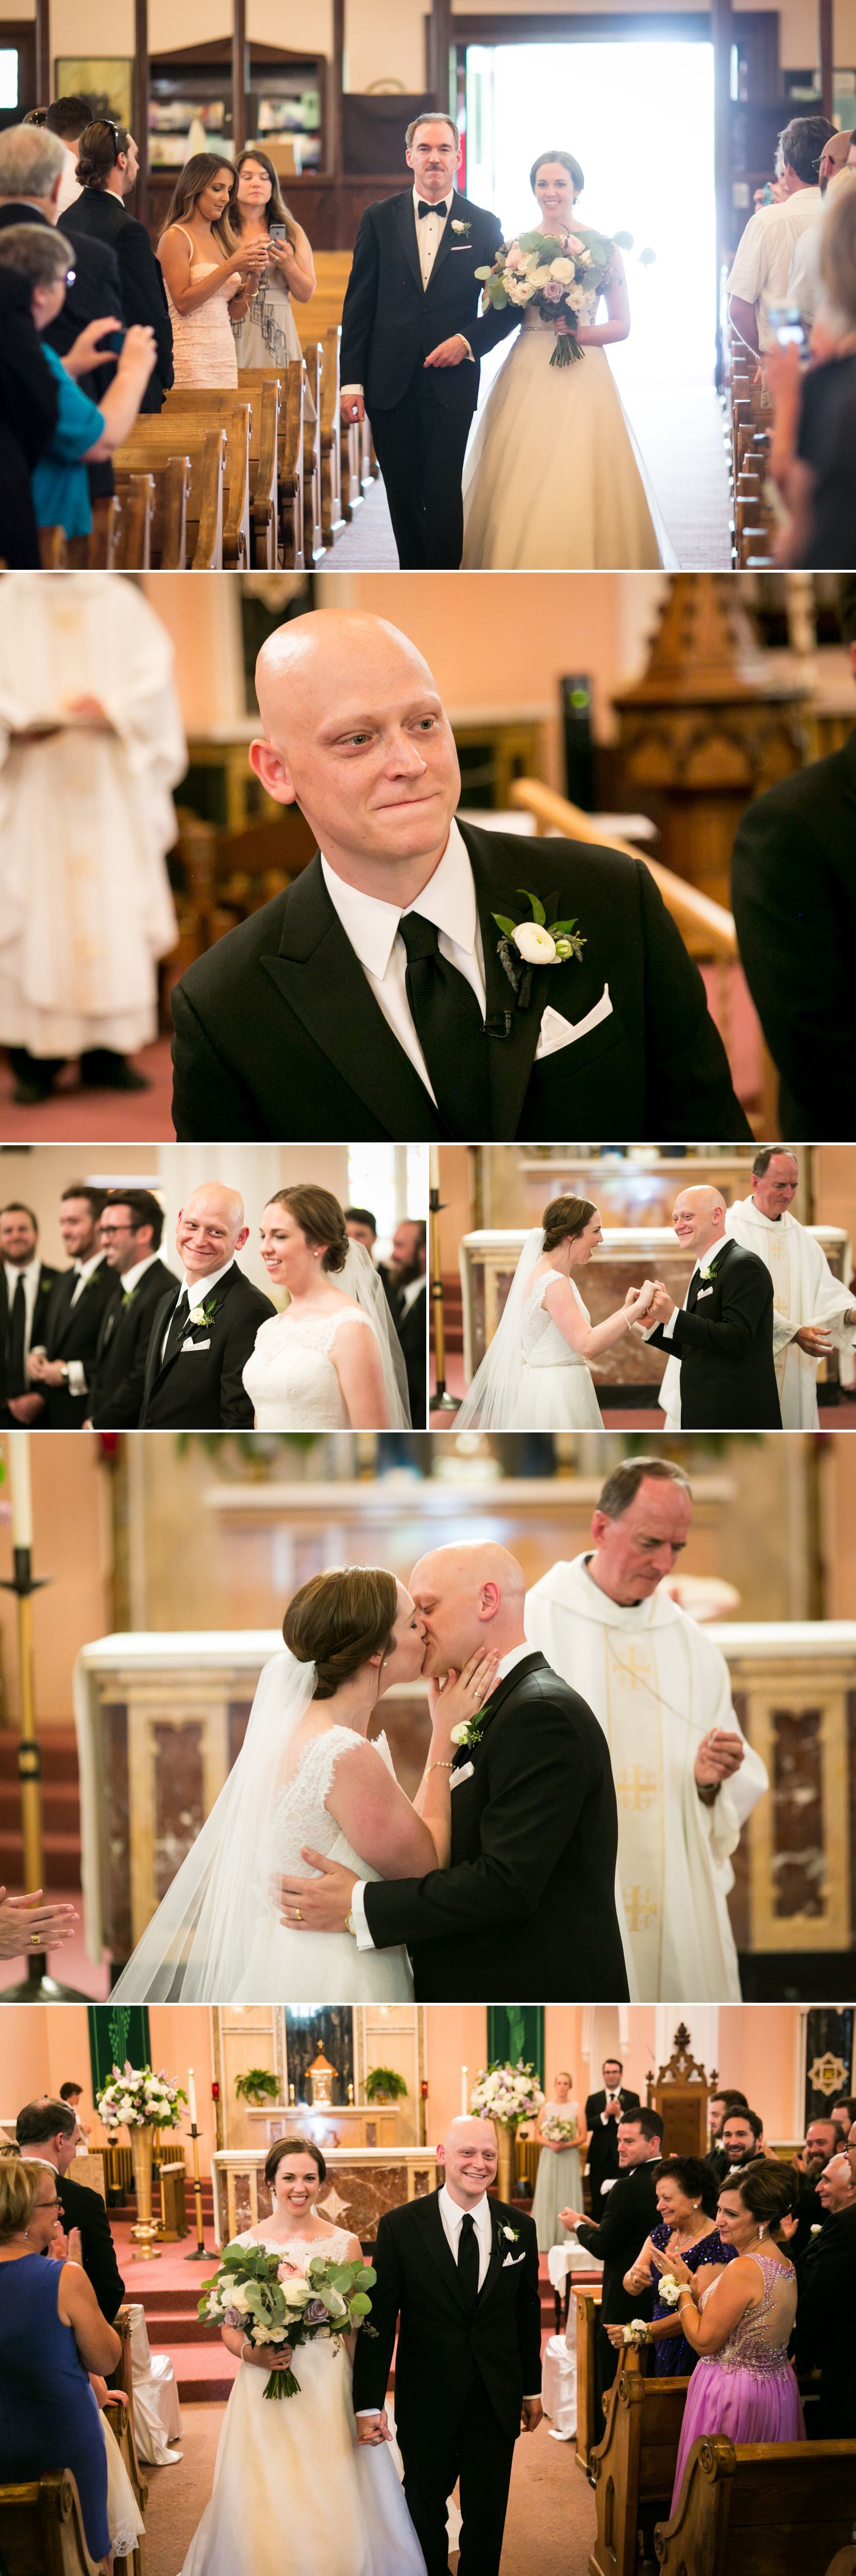 The groom's first look and their first kiss.